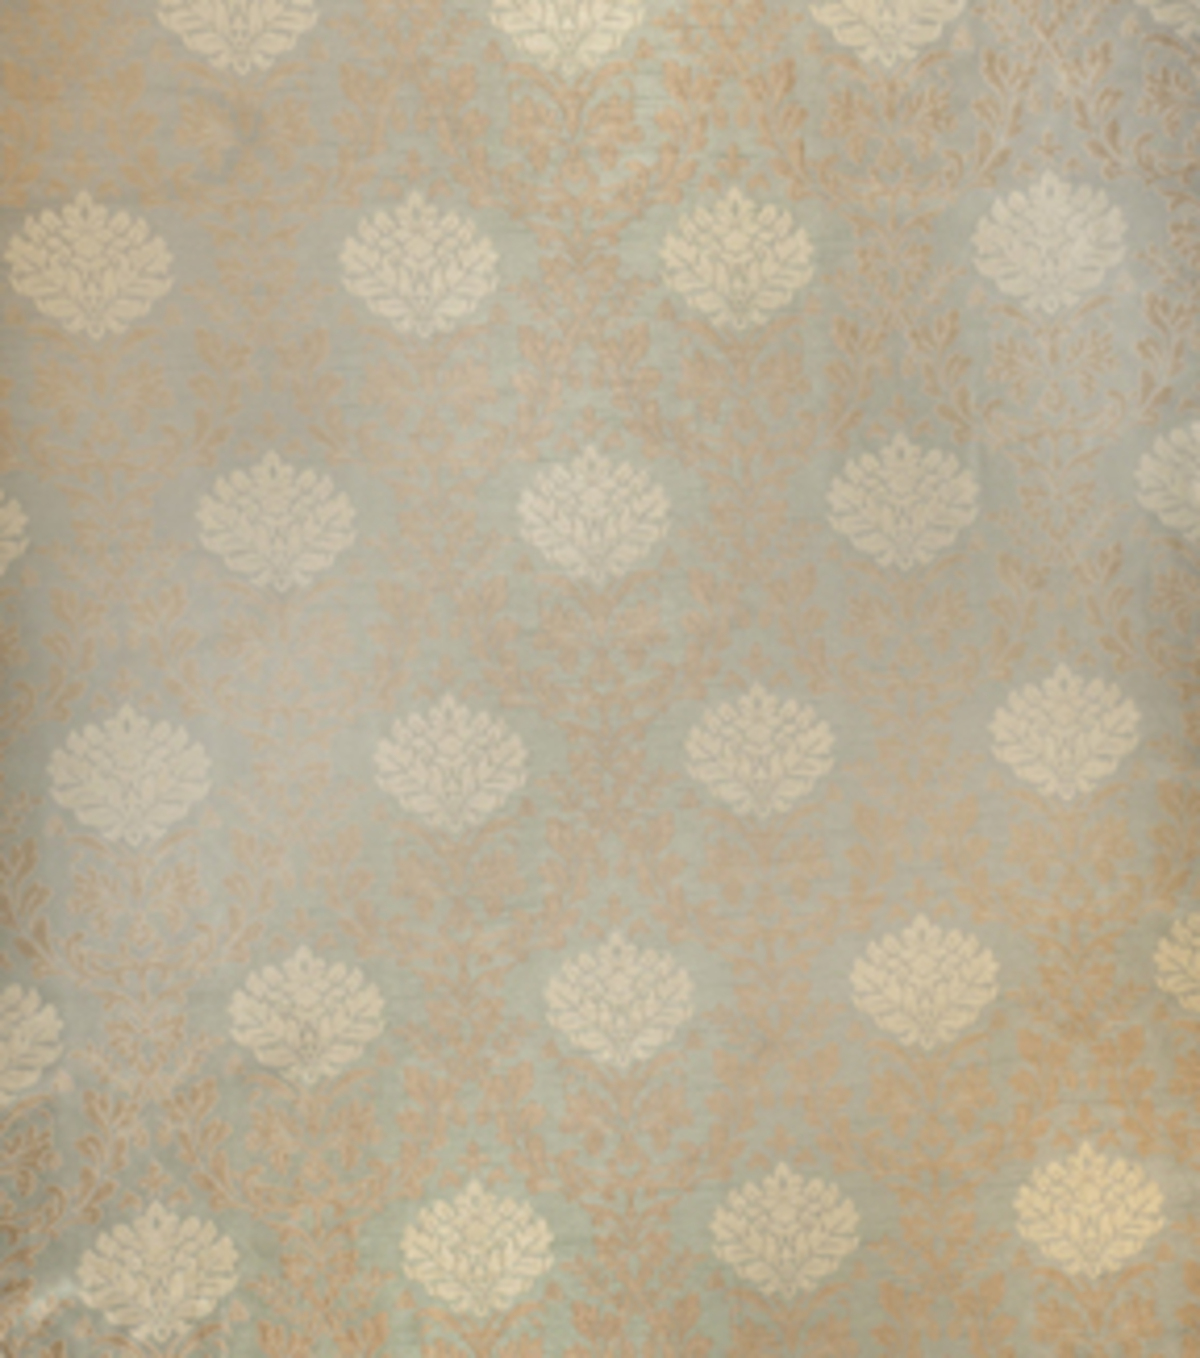 Home Decor 8\u0022x8\u0022 Fabric Swatch-Print Fabric Eaton Square Marshall Sea Green